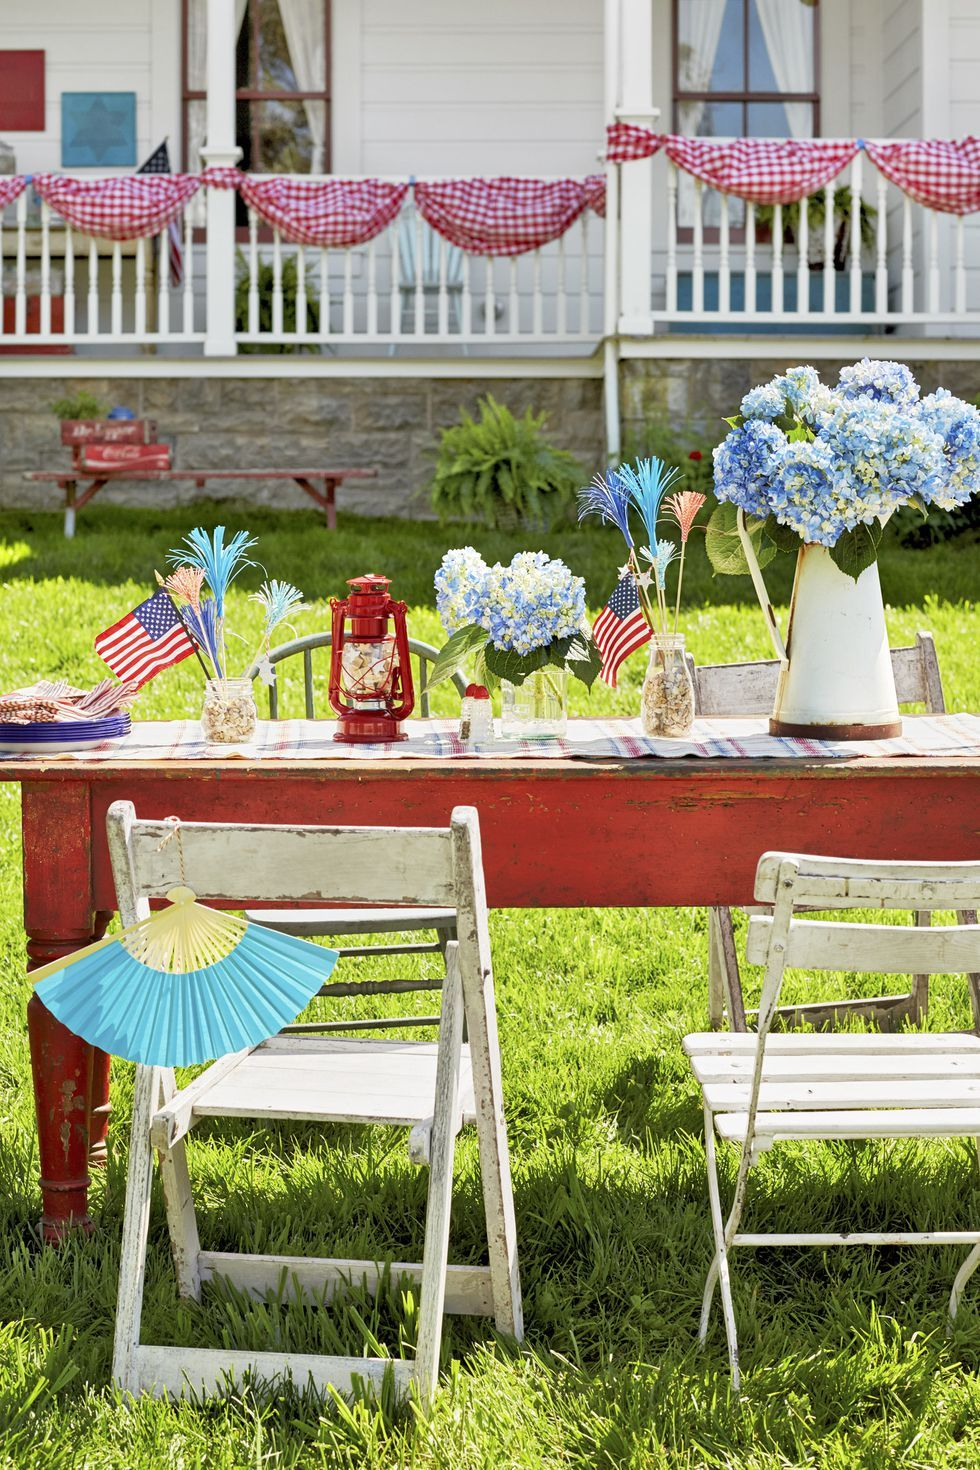 4Th Of July Backyard Party Ideas 18 best 4th of july party ideas - games & diy decor for a fourth of